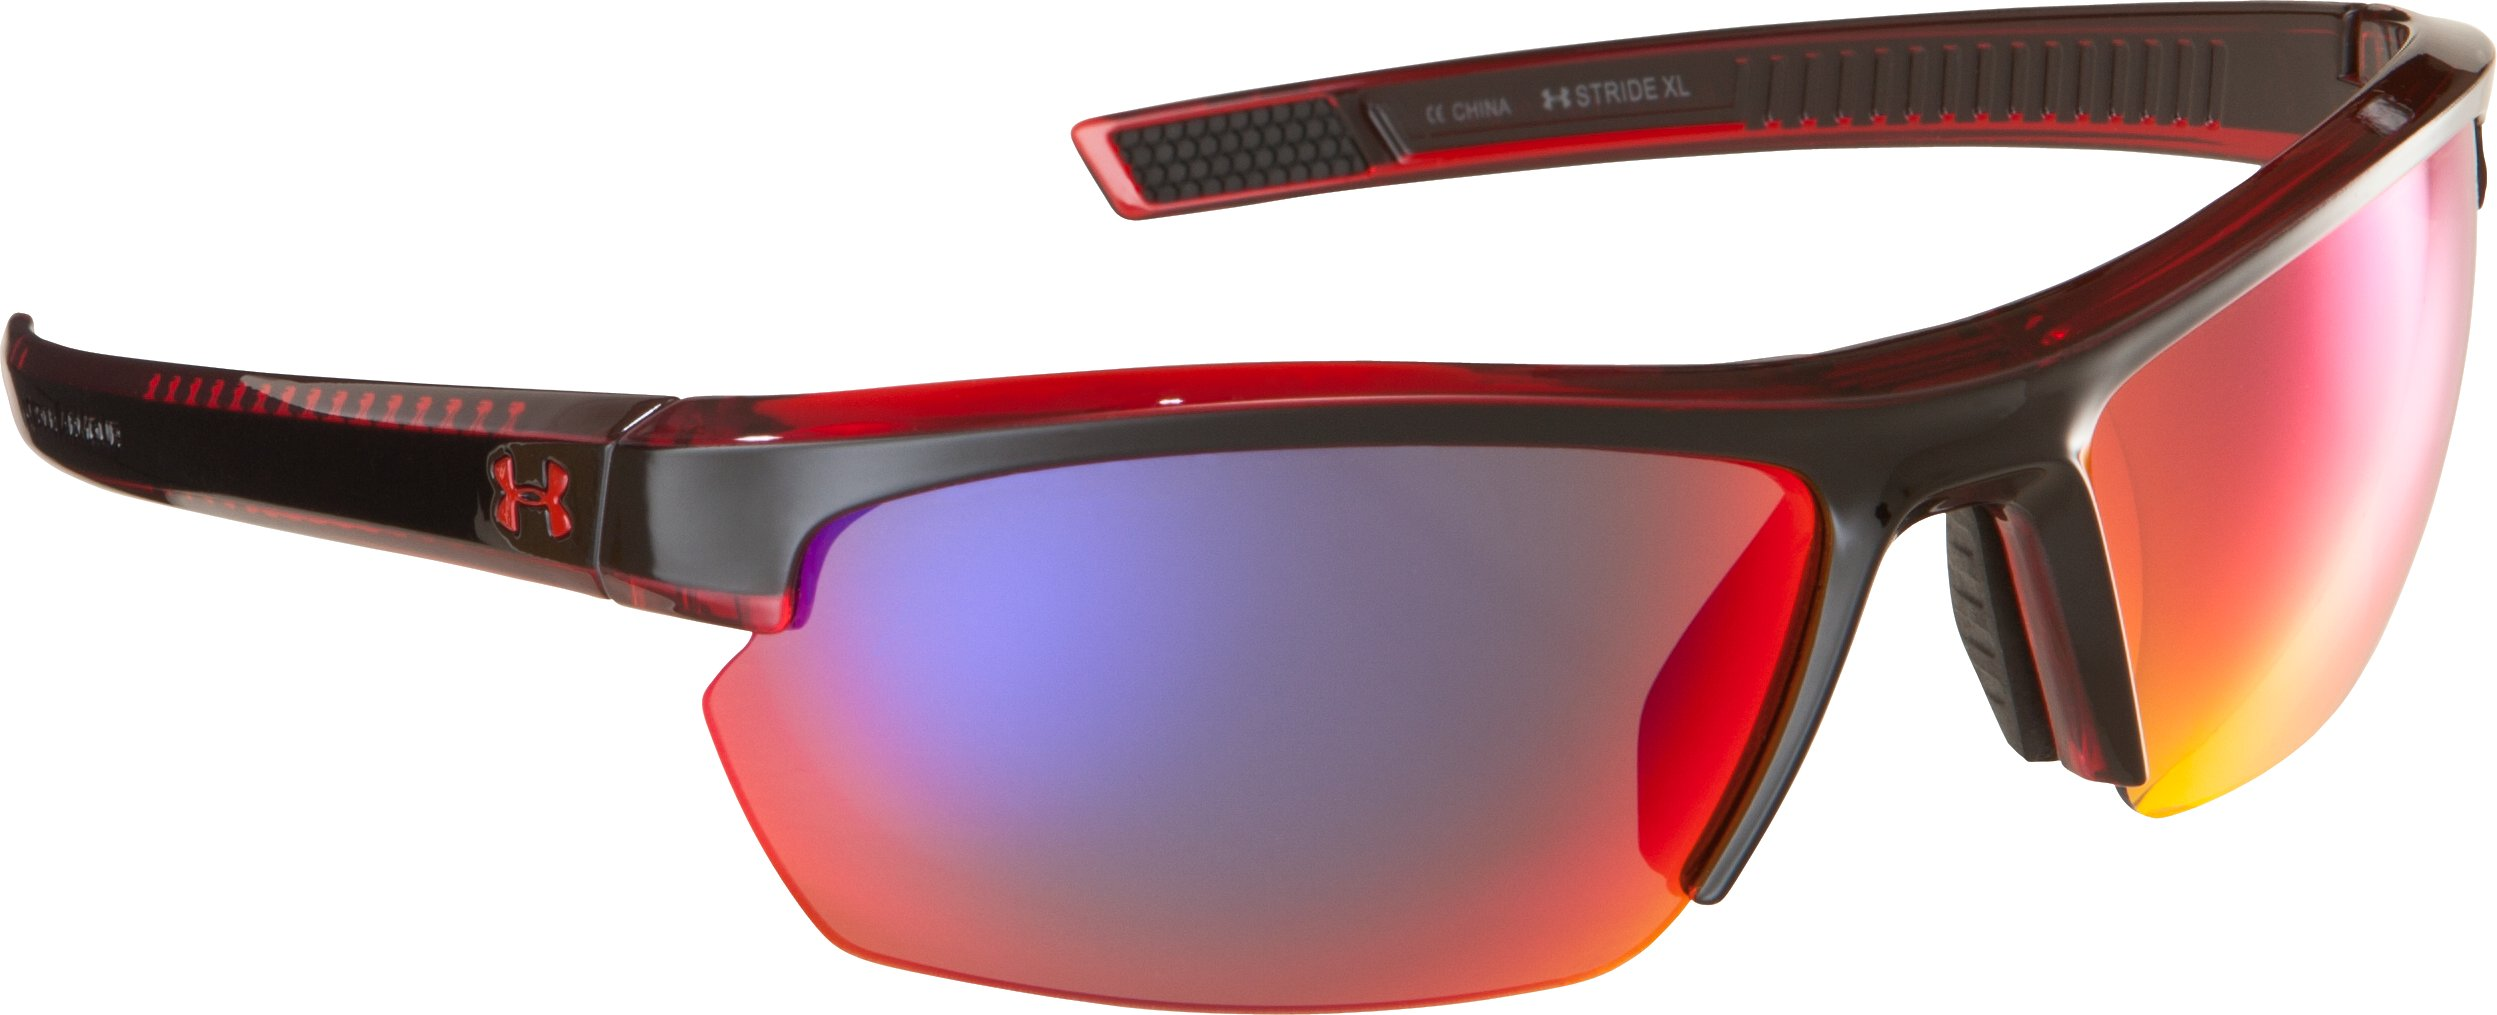 UA Stride XL Multiflection™ Sunglasses, CRYSTAL RED